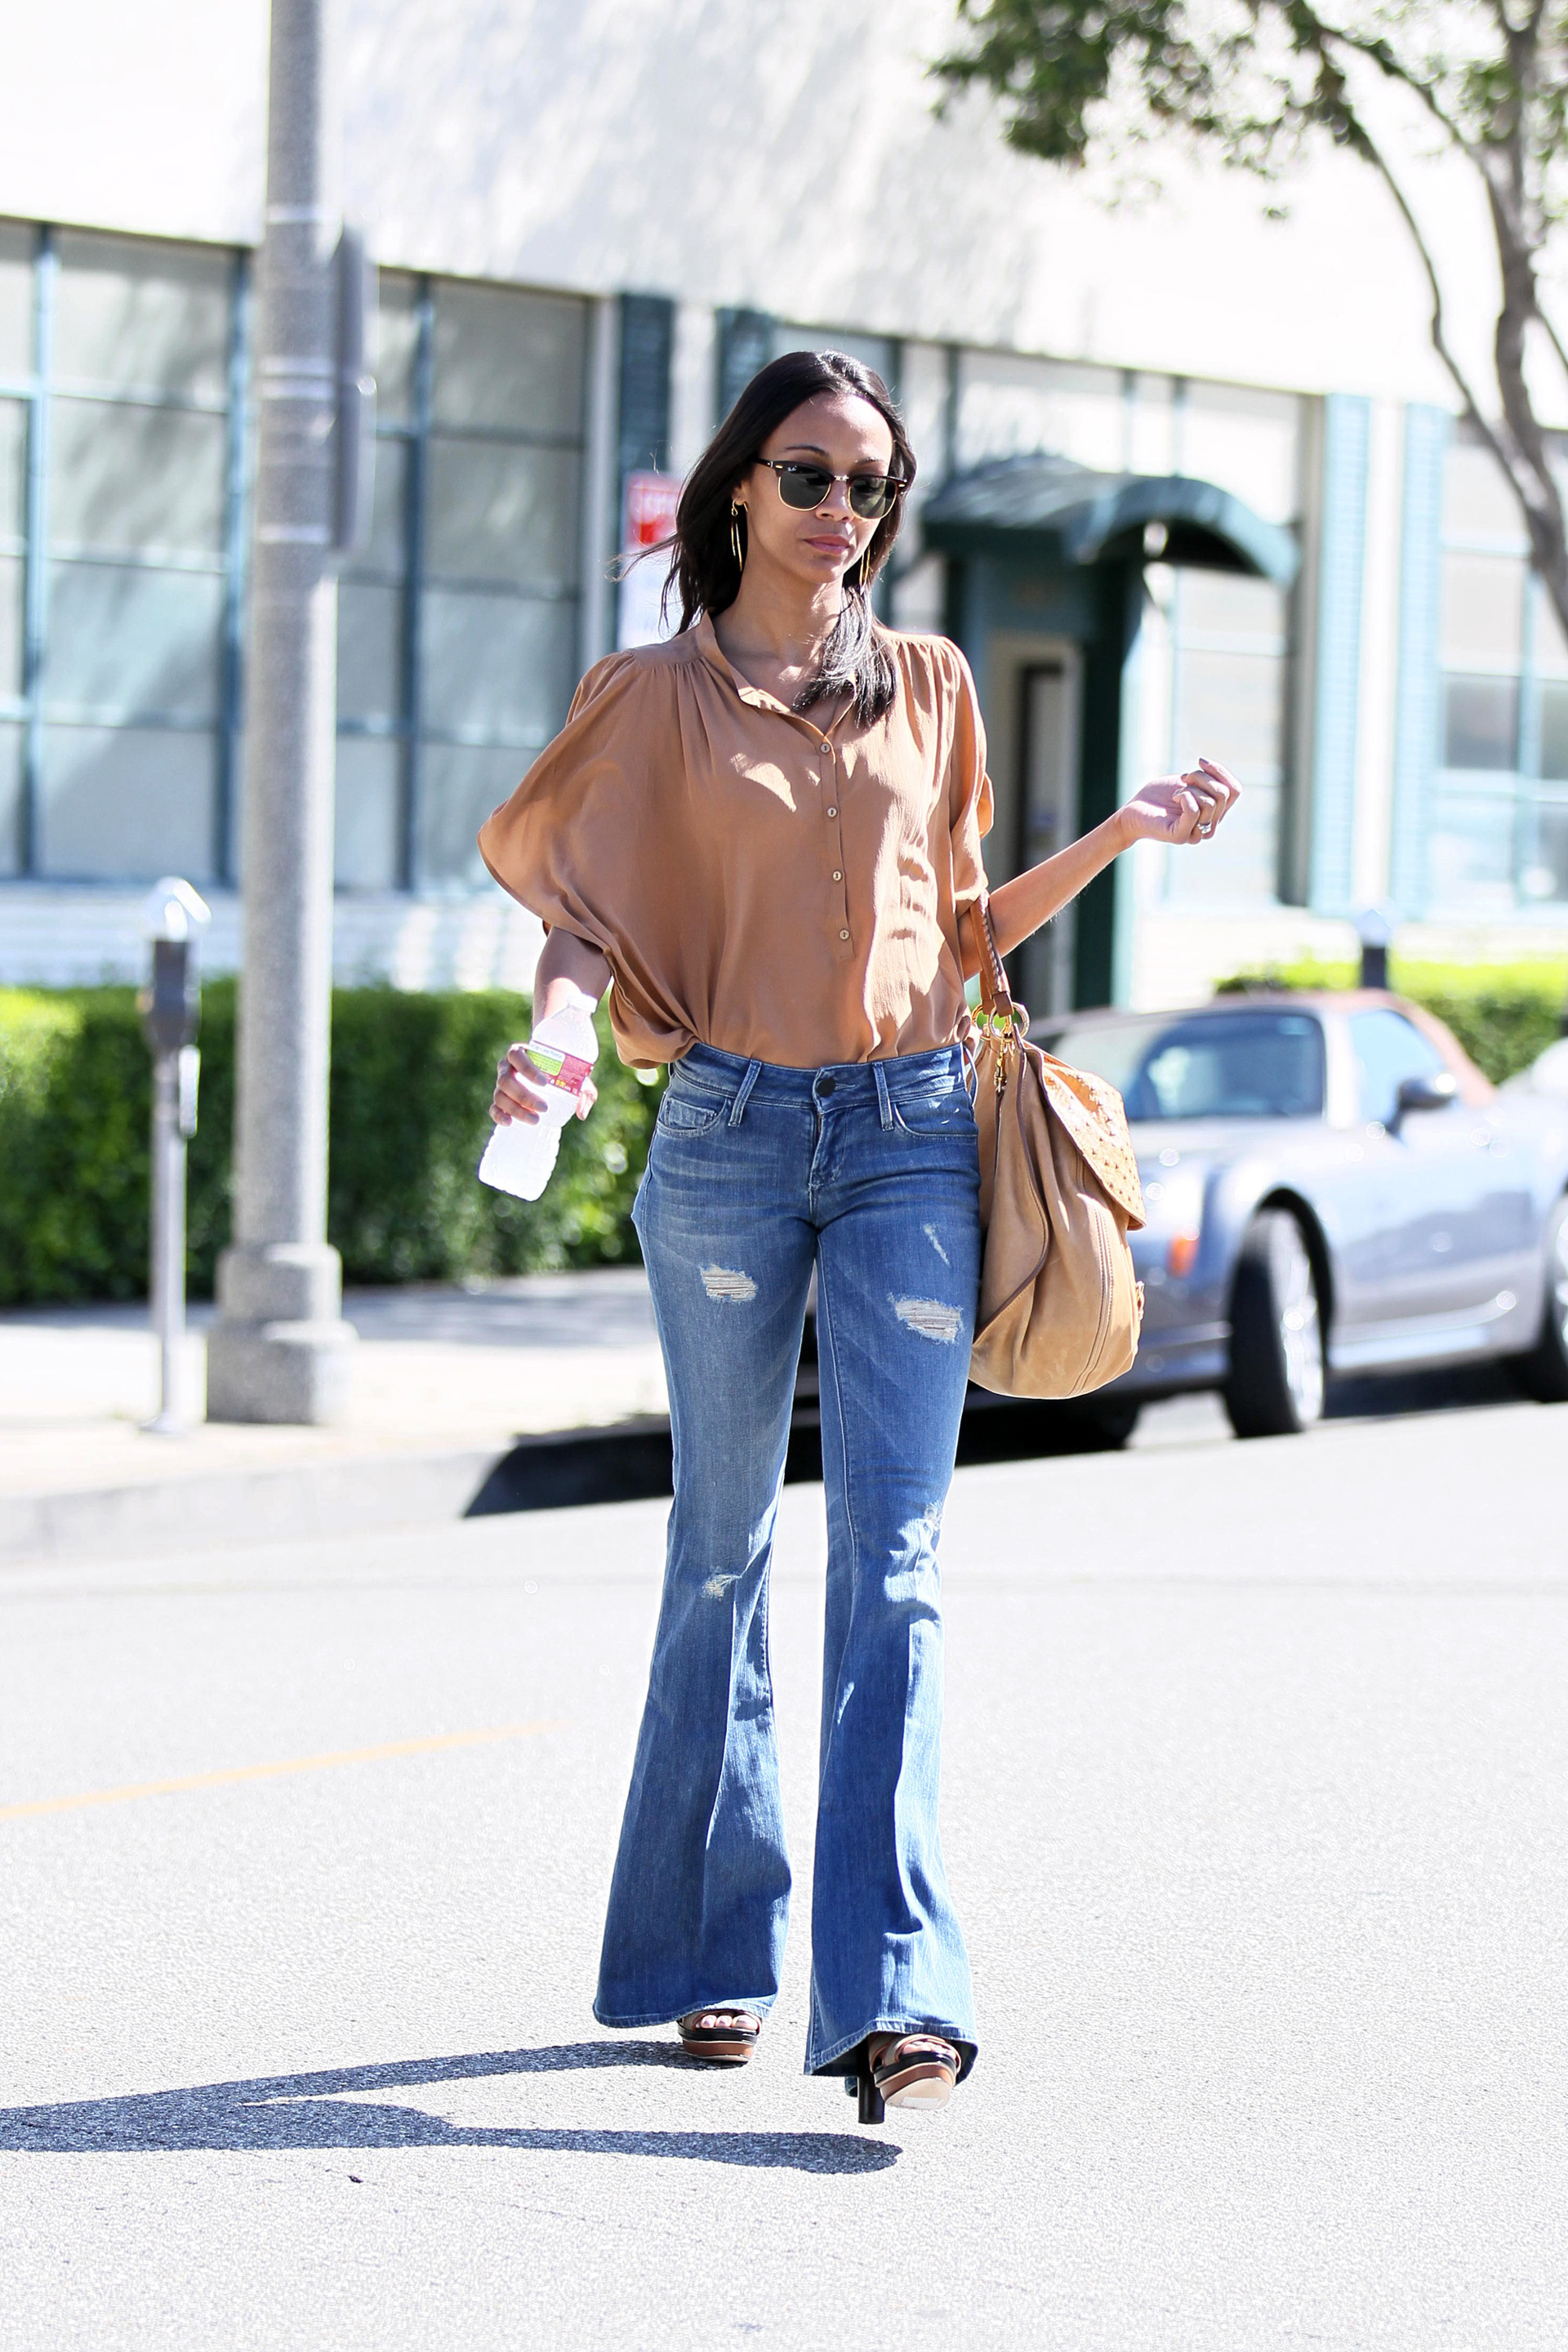 This quick photo guide takes the guesswork out of buying jeans